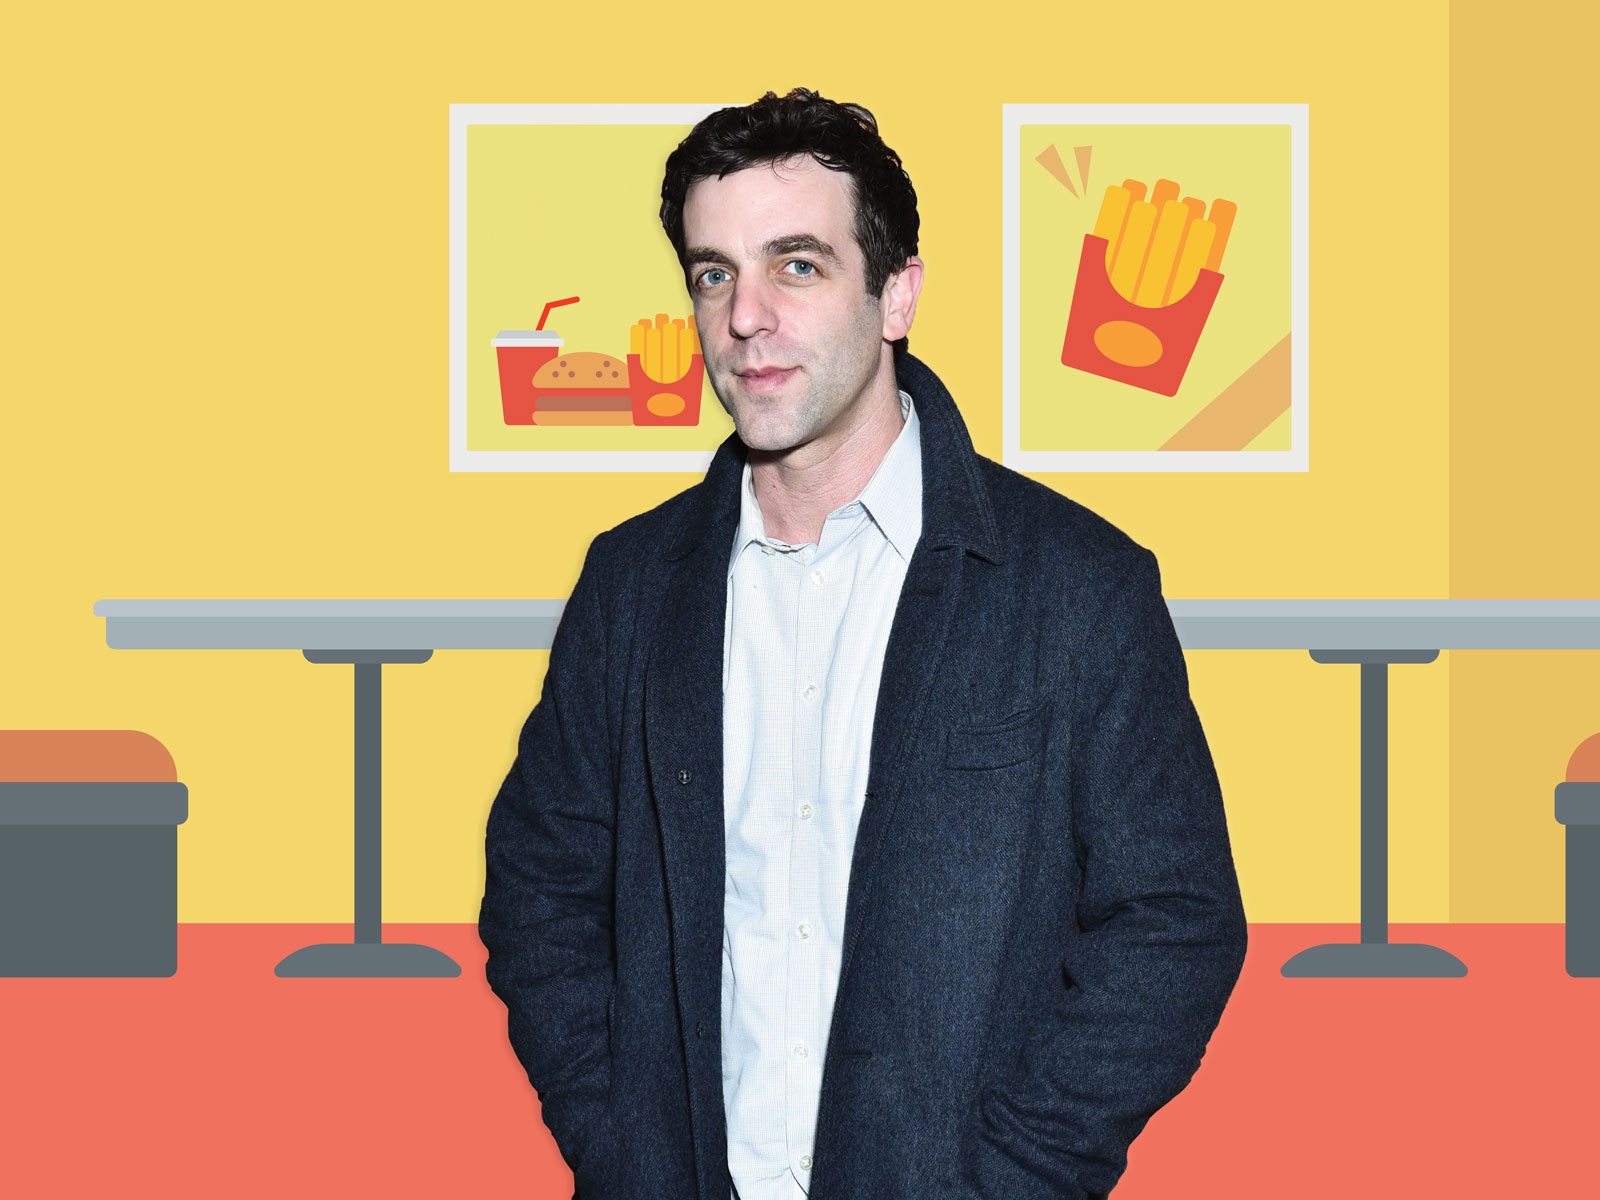 B.J. Novak's Genius Restaurant Idea Is Inspired by TGI Fridays